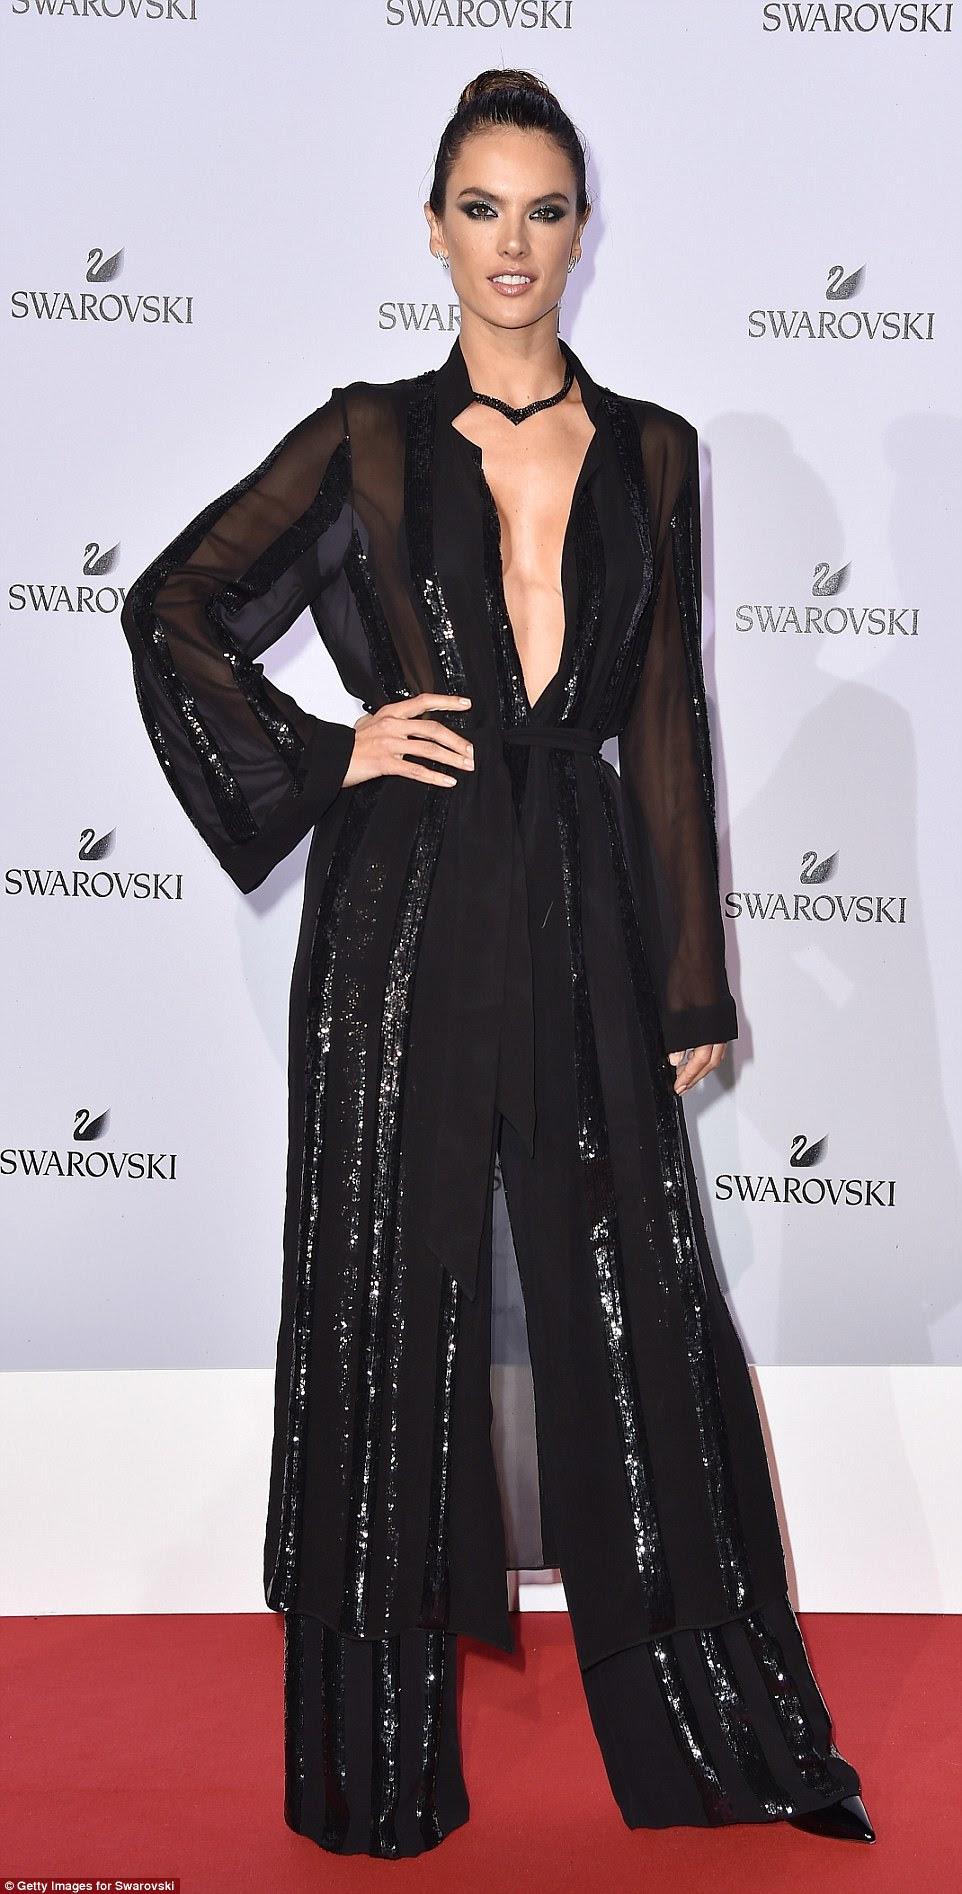 Stealing the show: Alessandra looked every inch the red carpet queen in her decadent one-piece, which featured racy sheer inserts combined with opulent black beading